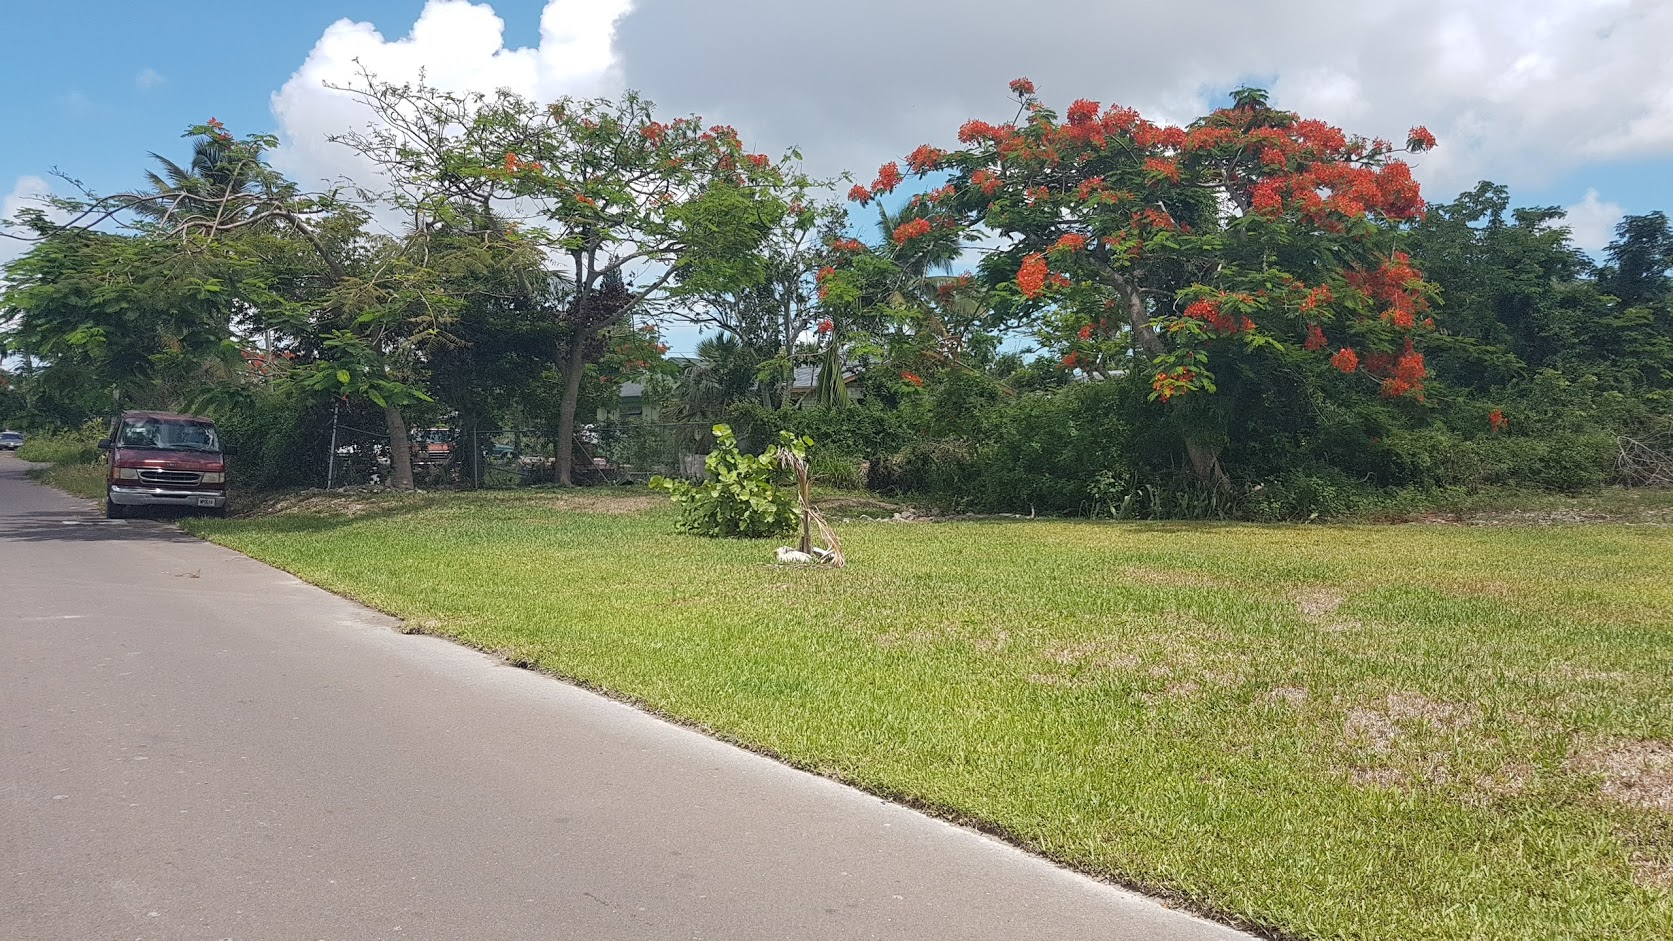 Land for Sale at Multi-family Lot # 146 Chippingham - MLS 30553 Chippingham, Nassau And Paradise Island, Bahamas